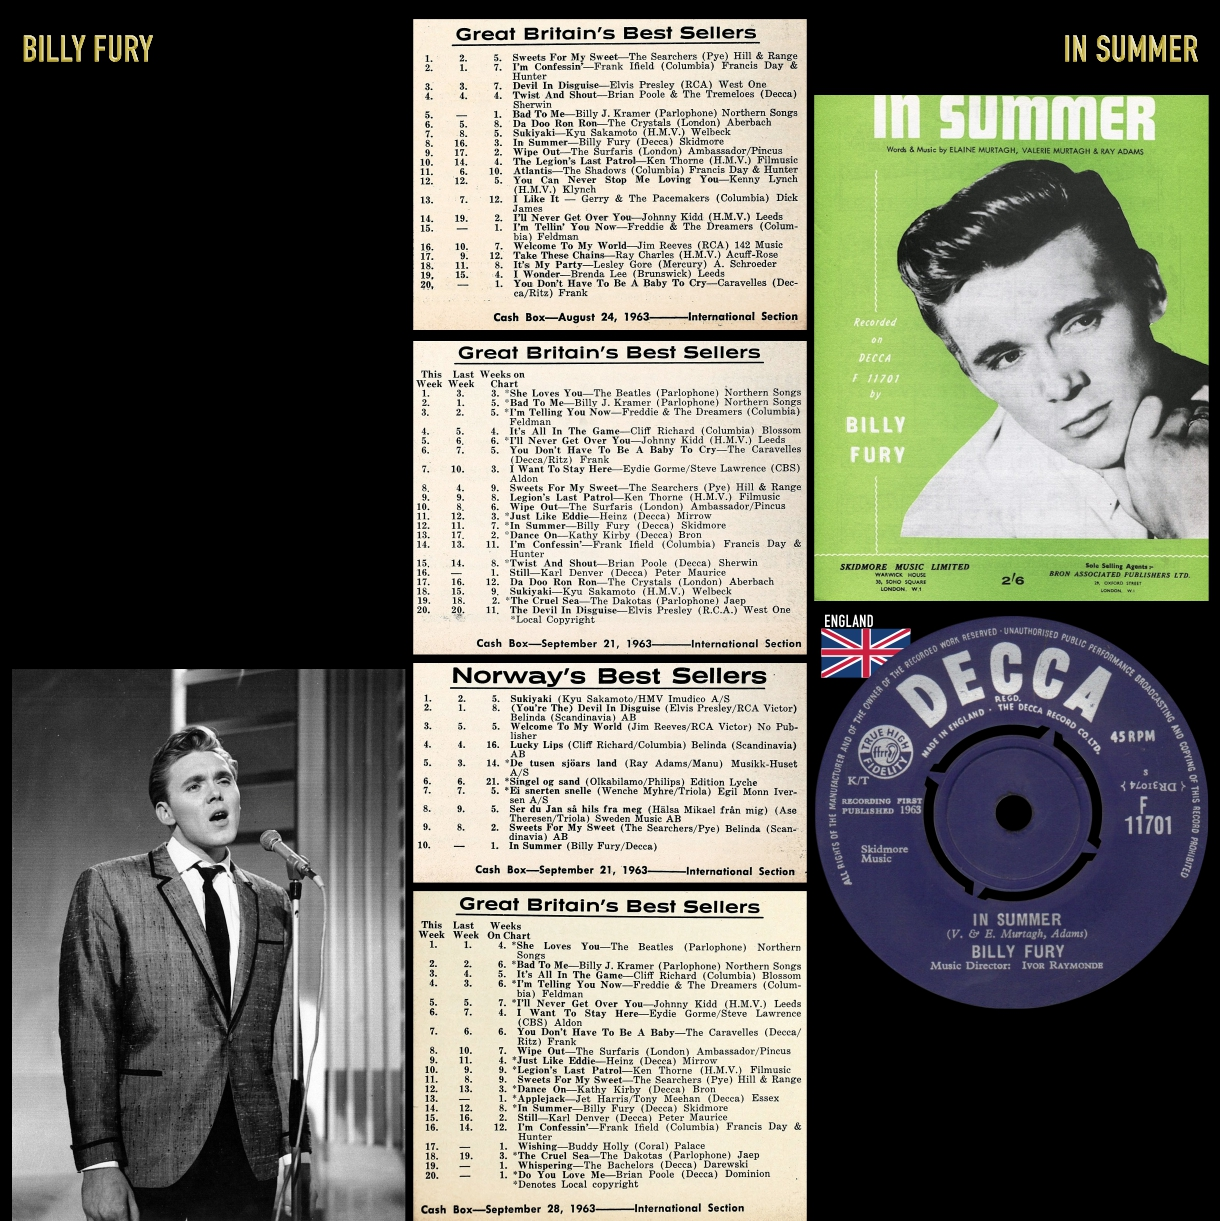 630720_Billy Fury_In Summer_new